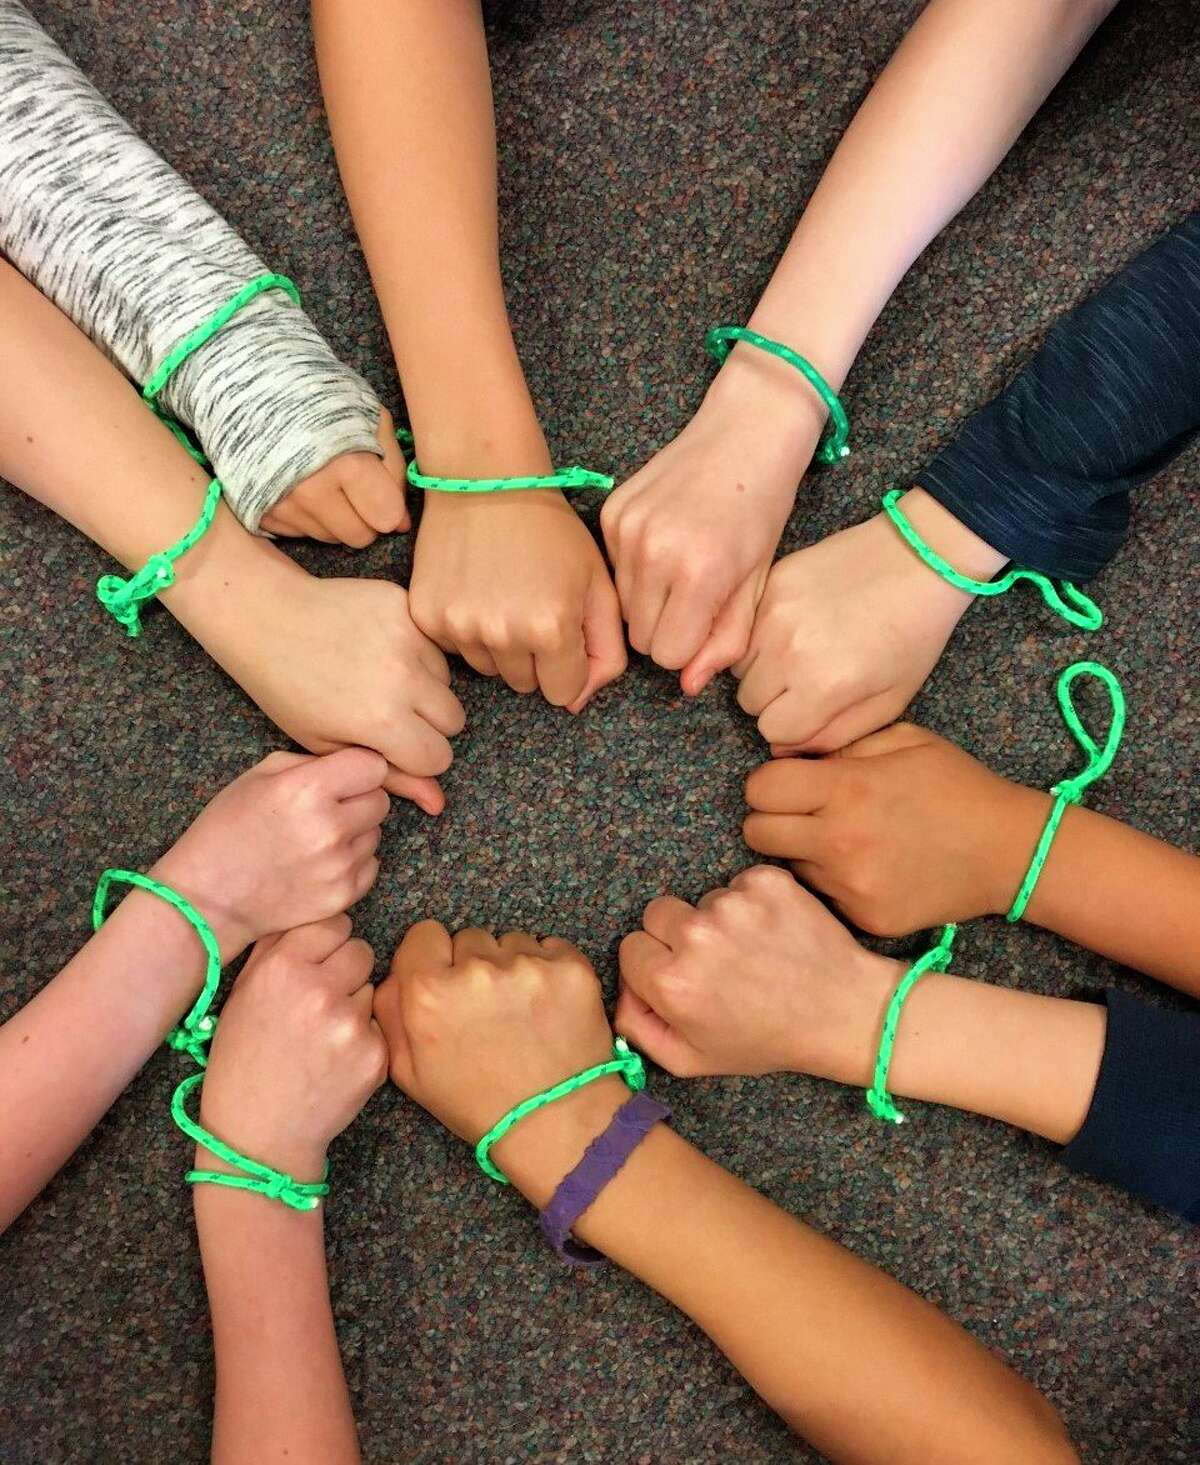 Fourth-grade students in Tracy Bennett's class at Onekama Consolidated Schools wore green bracelets in honor of Mental Health Awareness Month. (Courtesy photo)